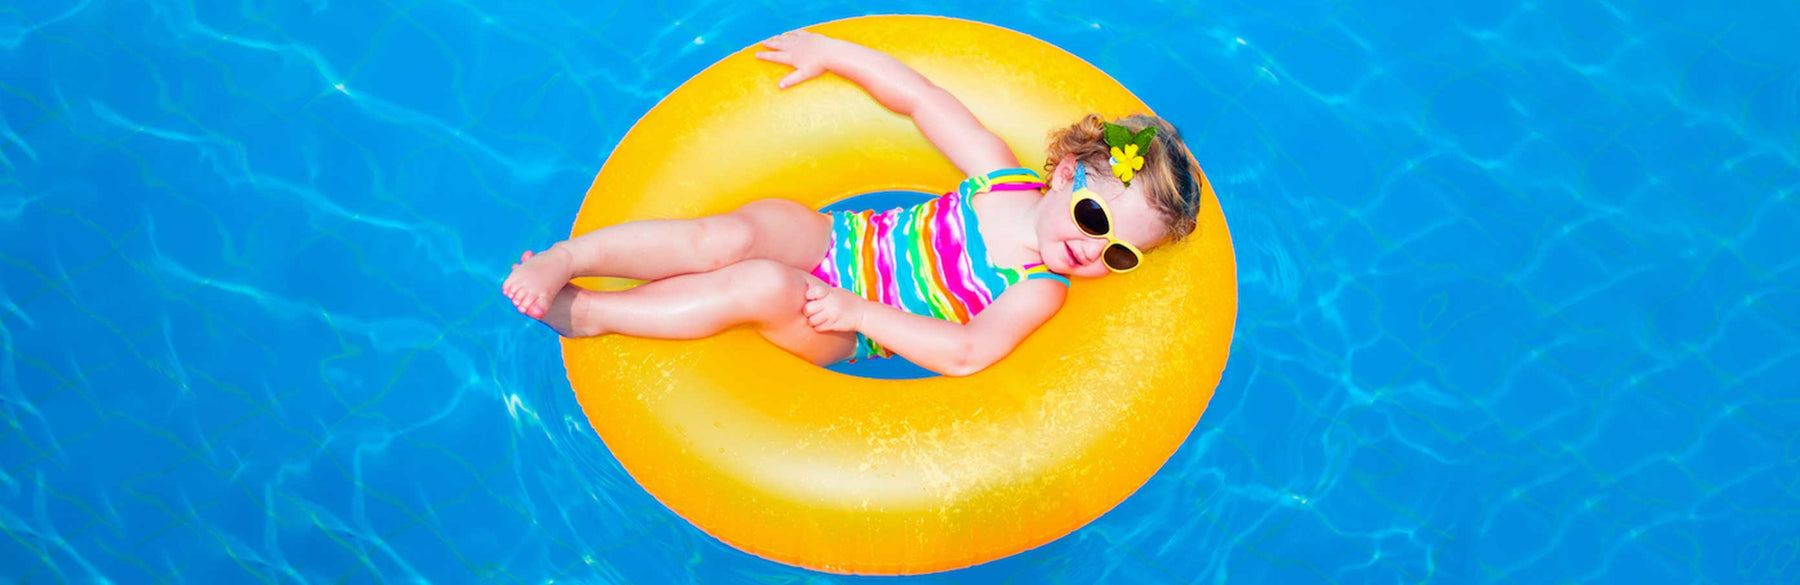 Little Girl in a yellow ring float in a swimming pool